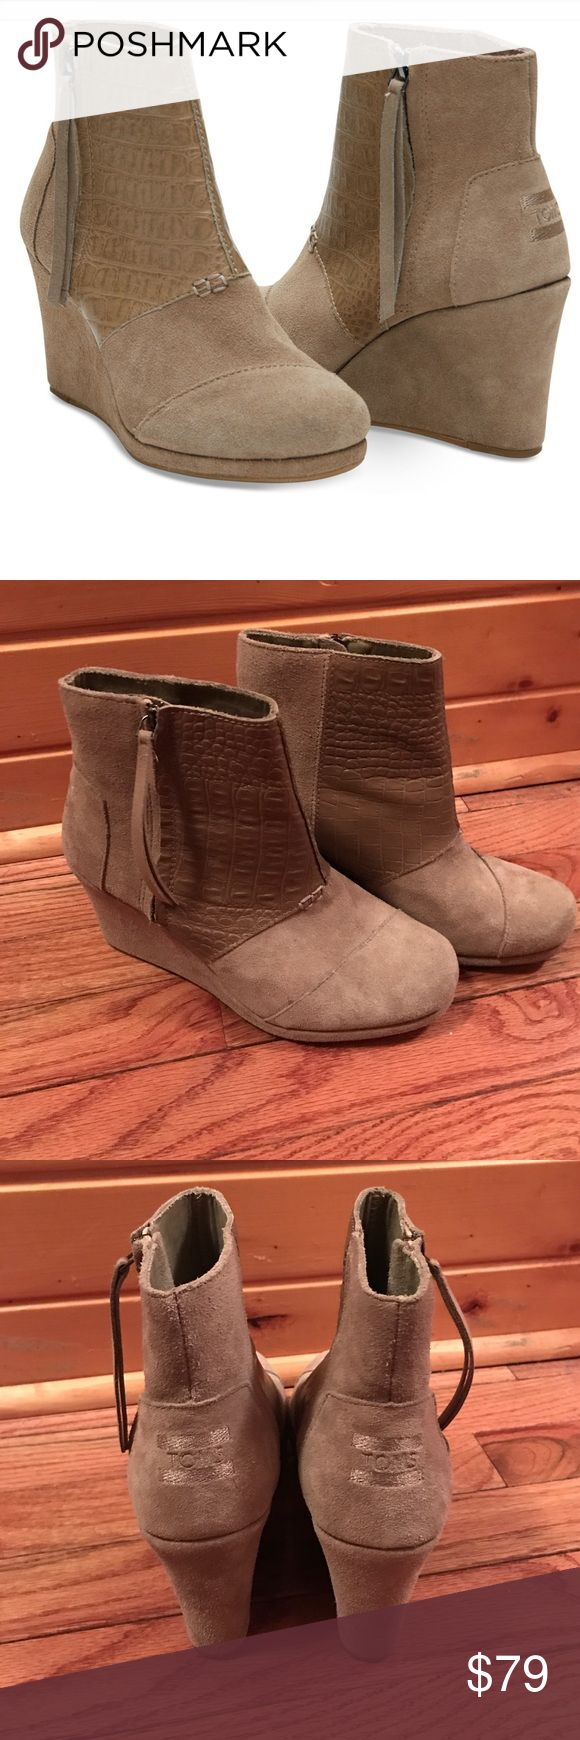 NEW TOMS Desert Wedges Size 8.5 Brand new without box! TOMS desert wedge highs. Size 8.5. Tan suede and croc embossed detail. More information in last picture 😊 no trades! Make an offer! TOMS Shoes Ankle Boots & Booties